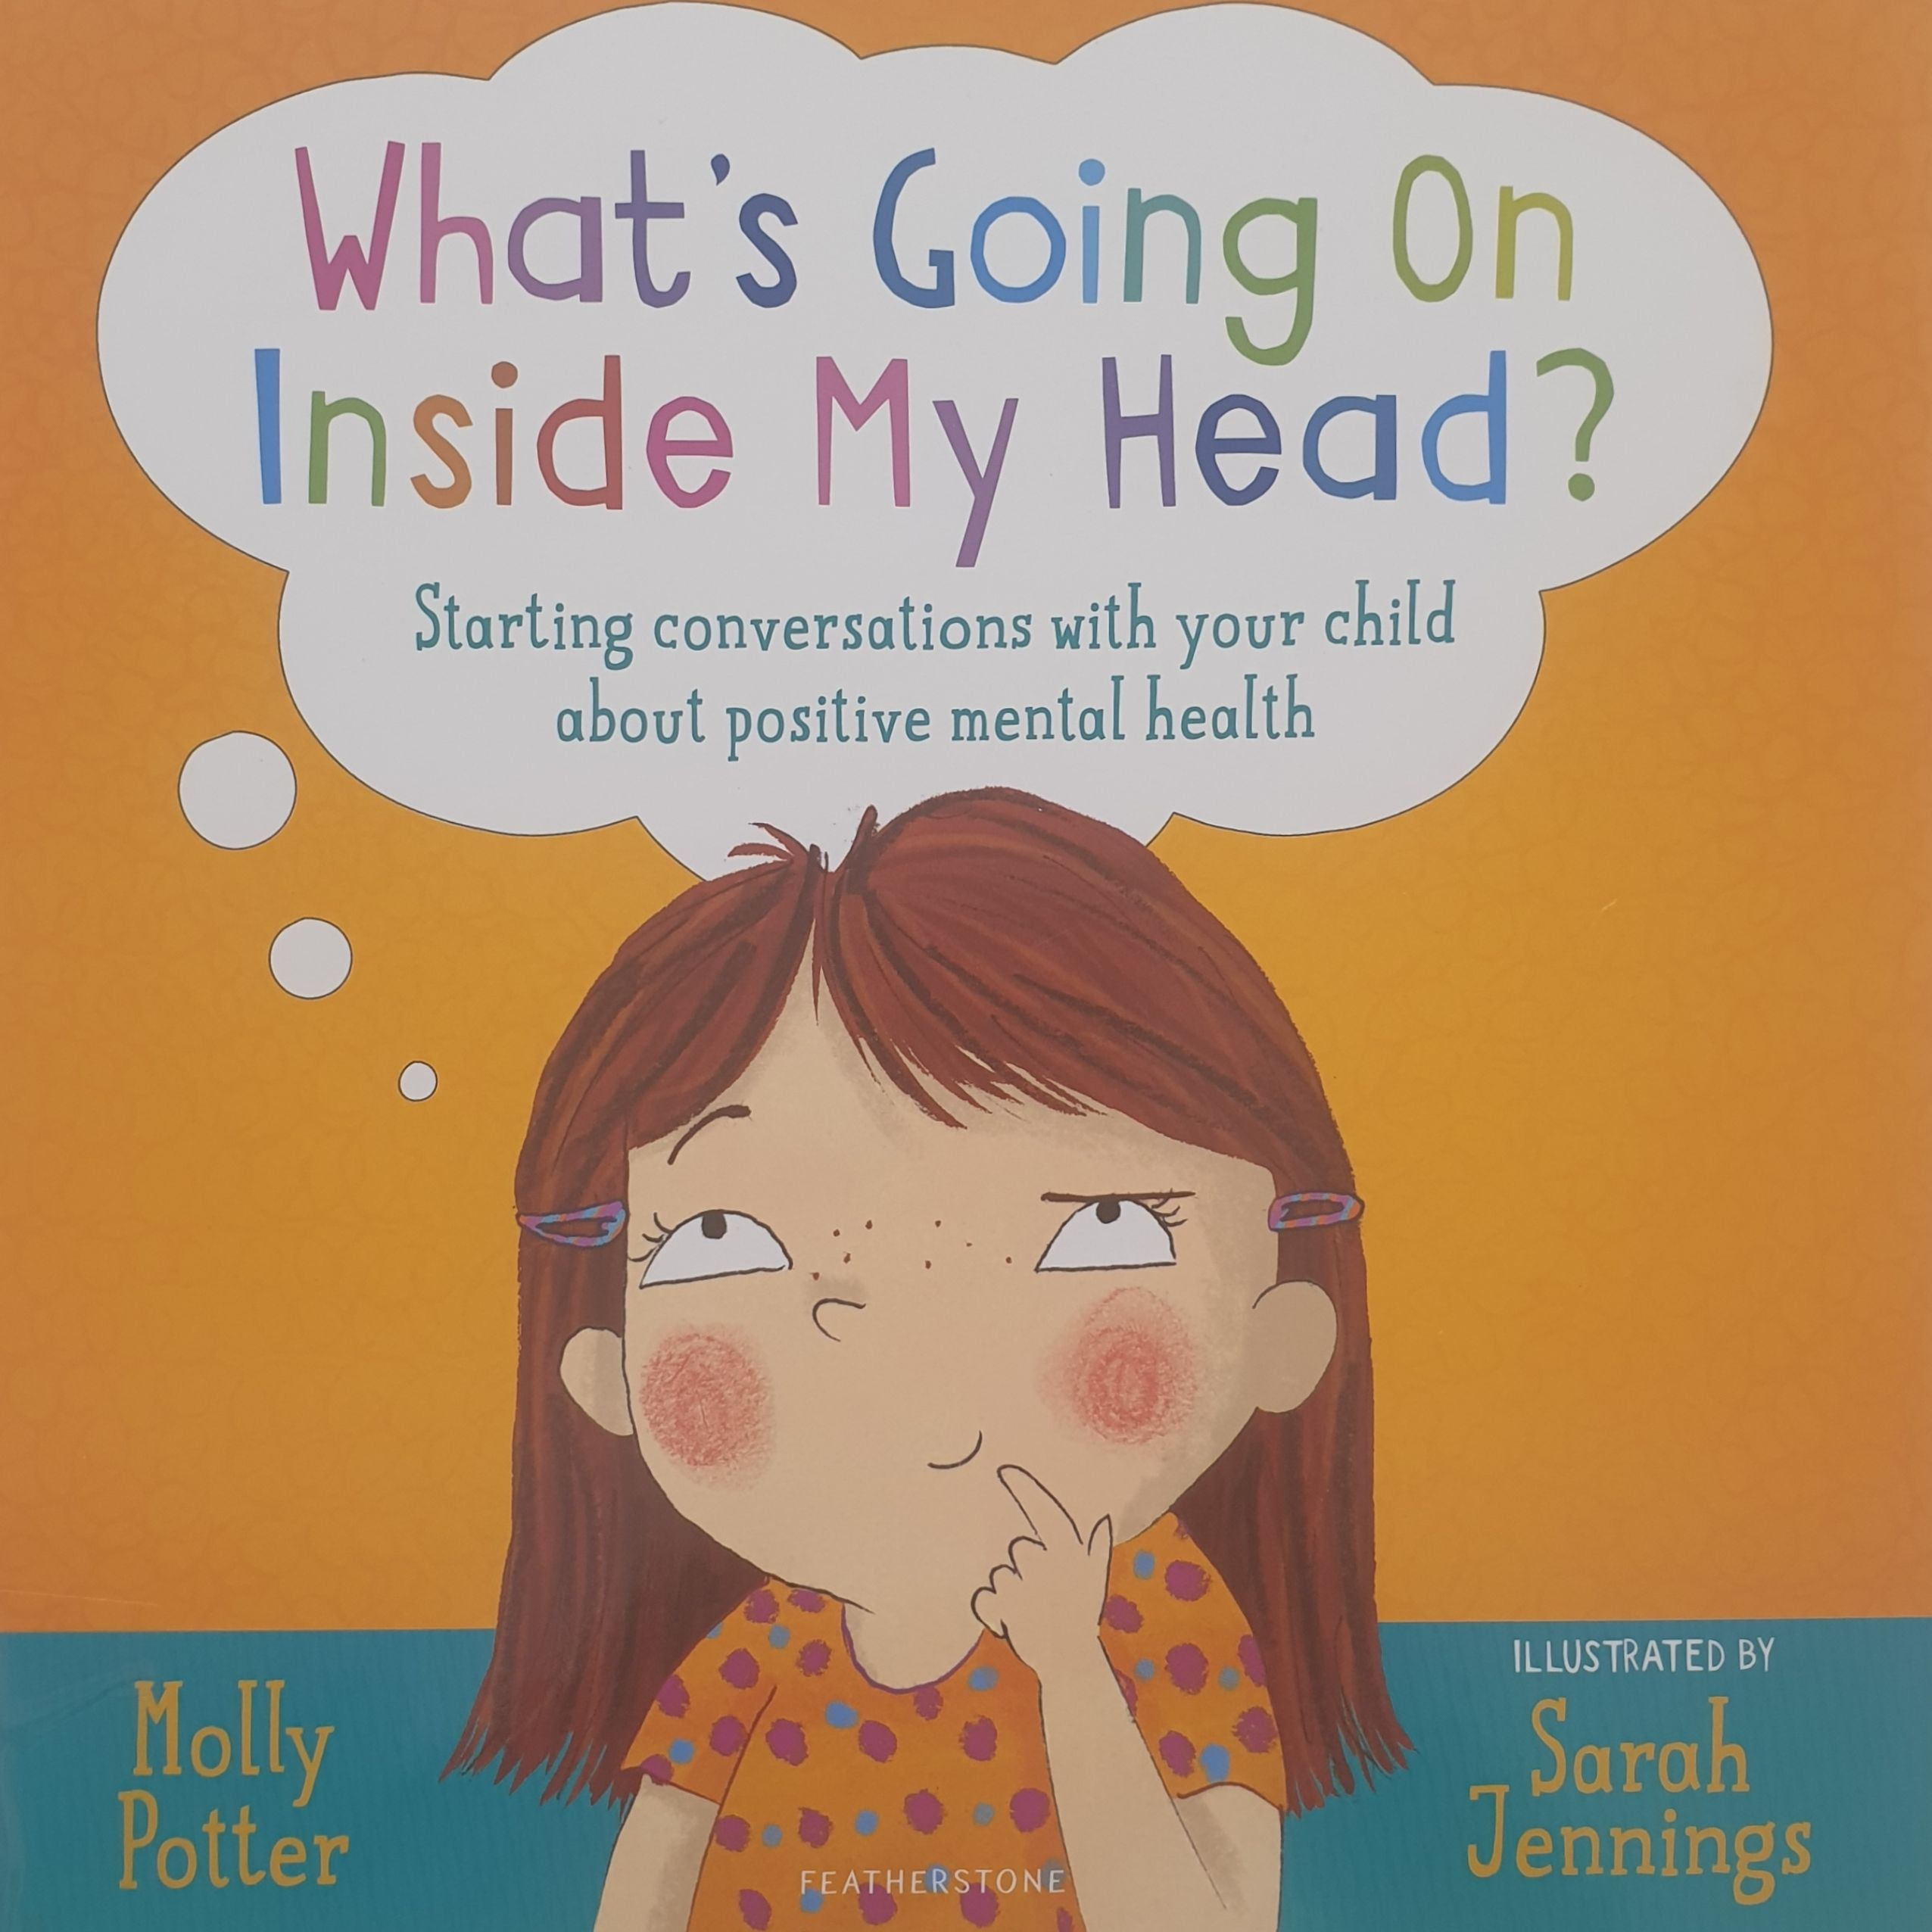 Book cover with an image of a illustrated young girl with red hair and freckles